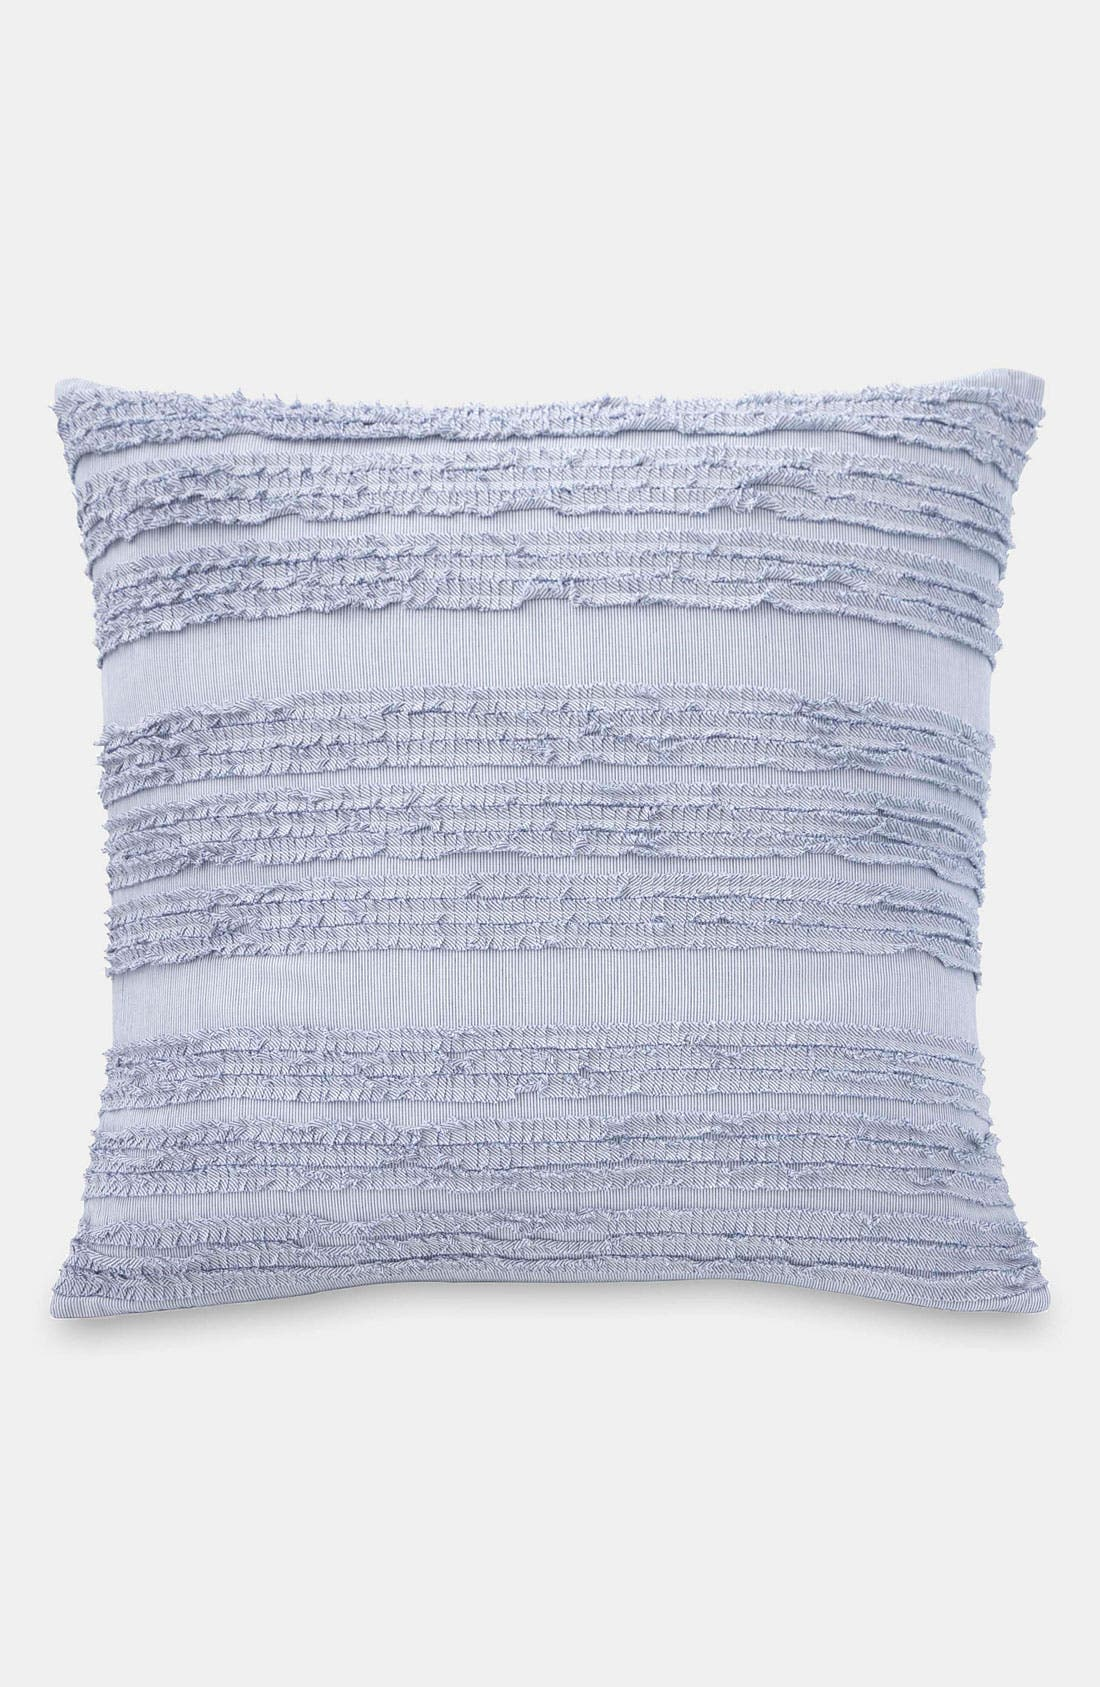 Alternate Image 1 Selected - DKNY 'Pure Innocence' Euro Pillow Sham